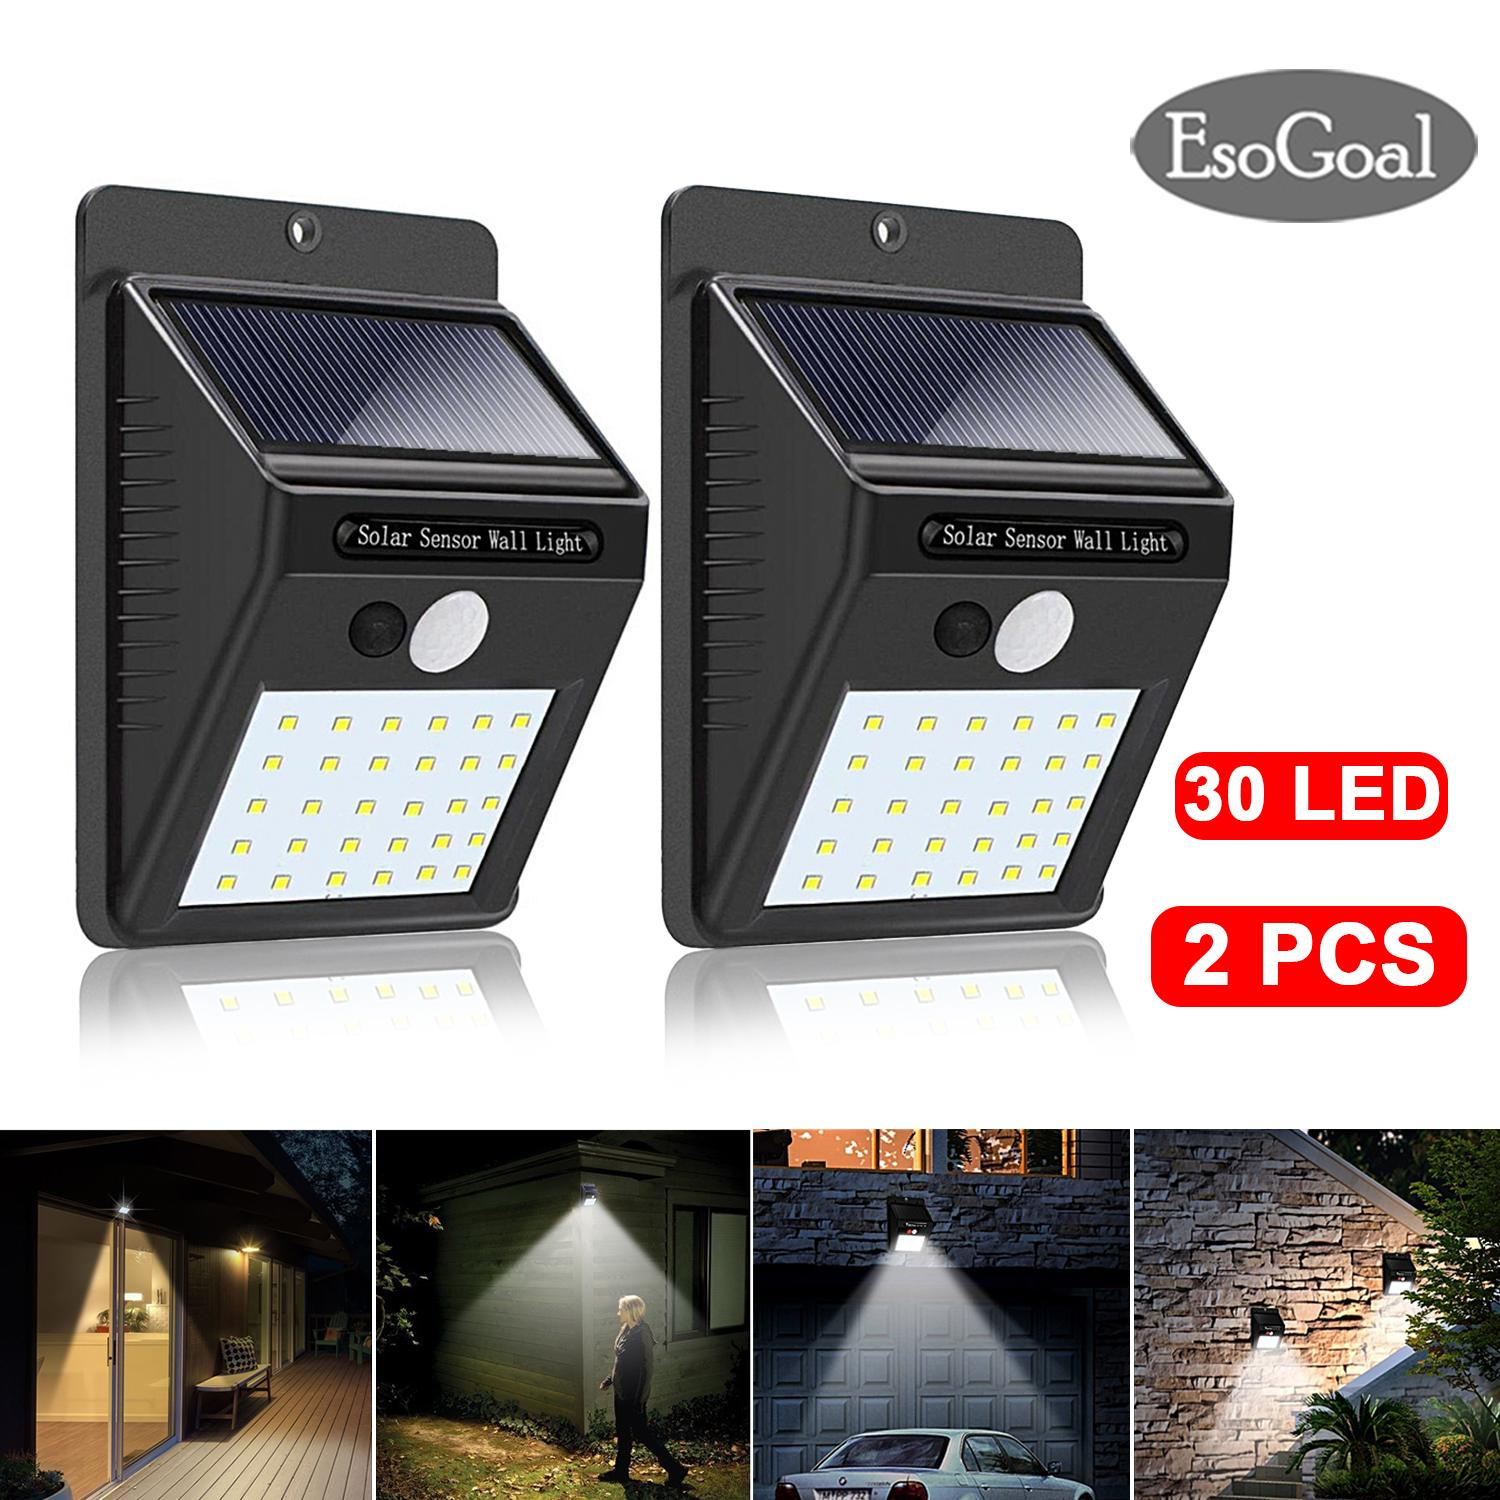 Lamps for solar panels for home and garden